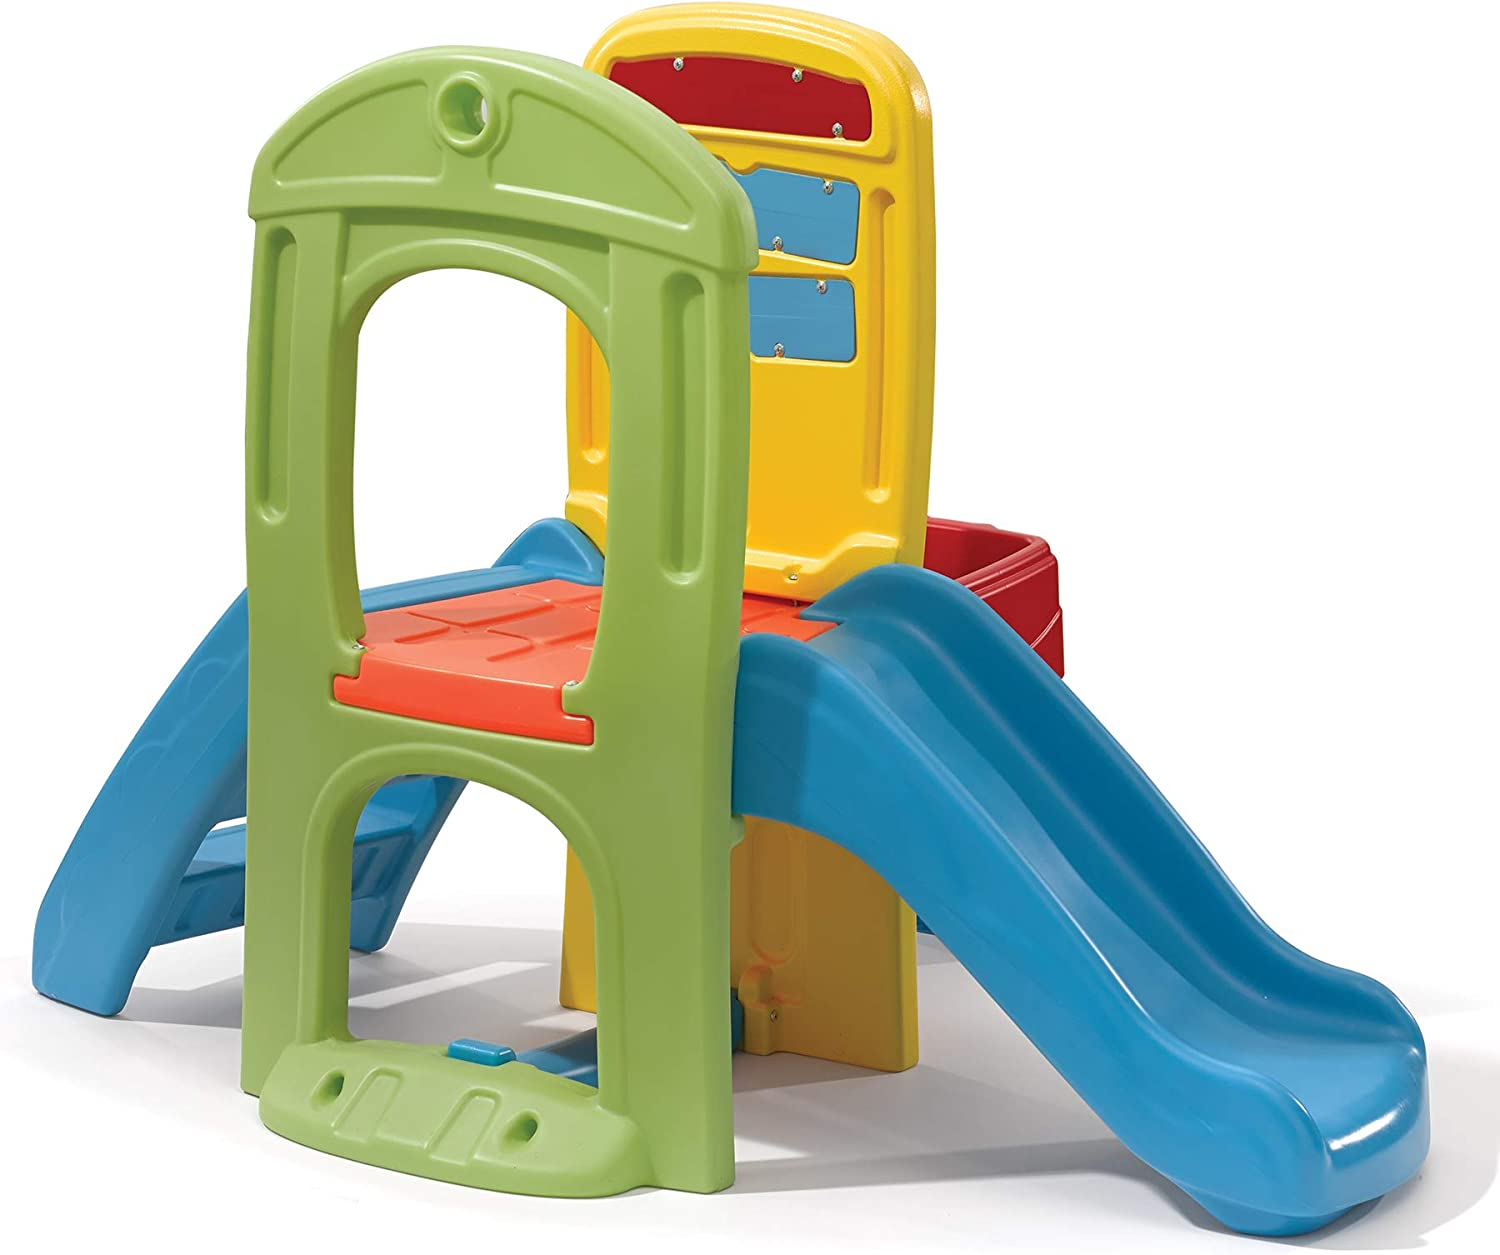 Top 10 Best Toddler Slide (2020 Reviews & Buying Guide) 2